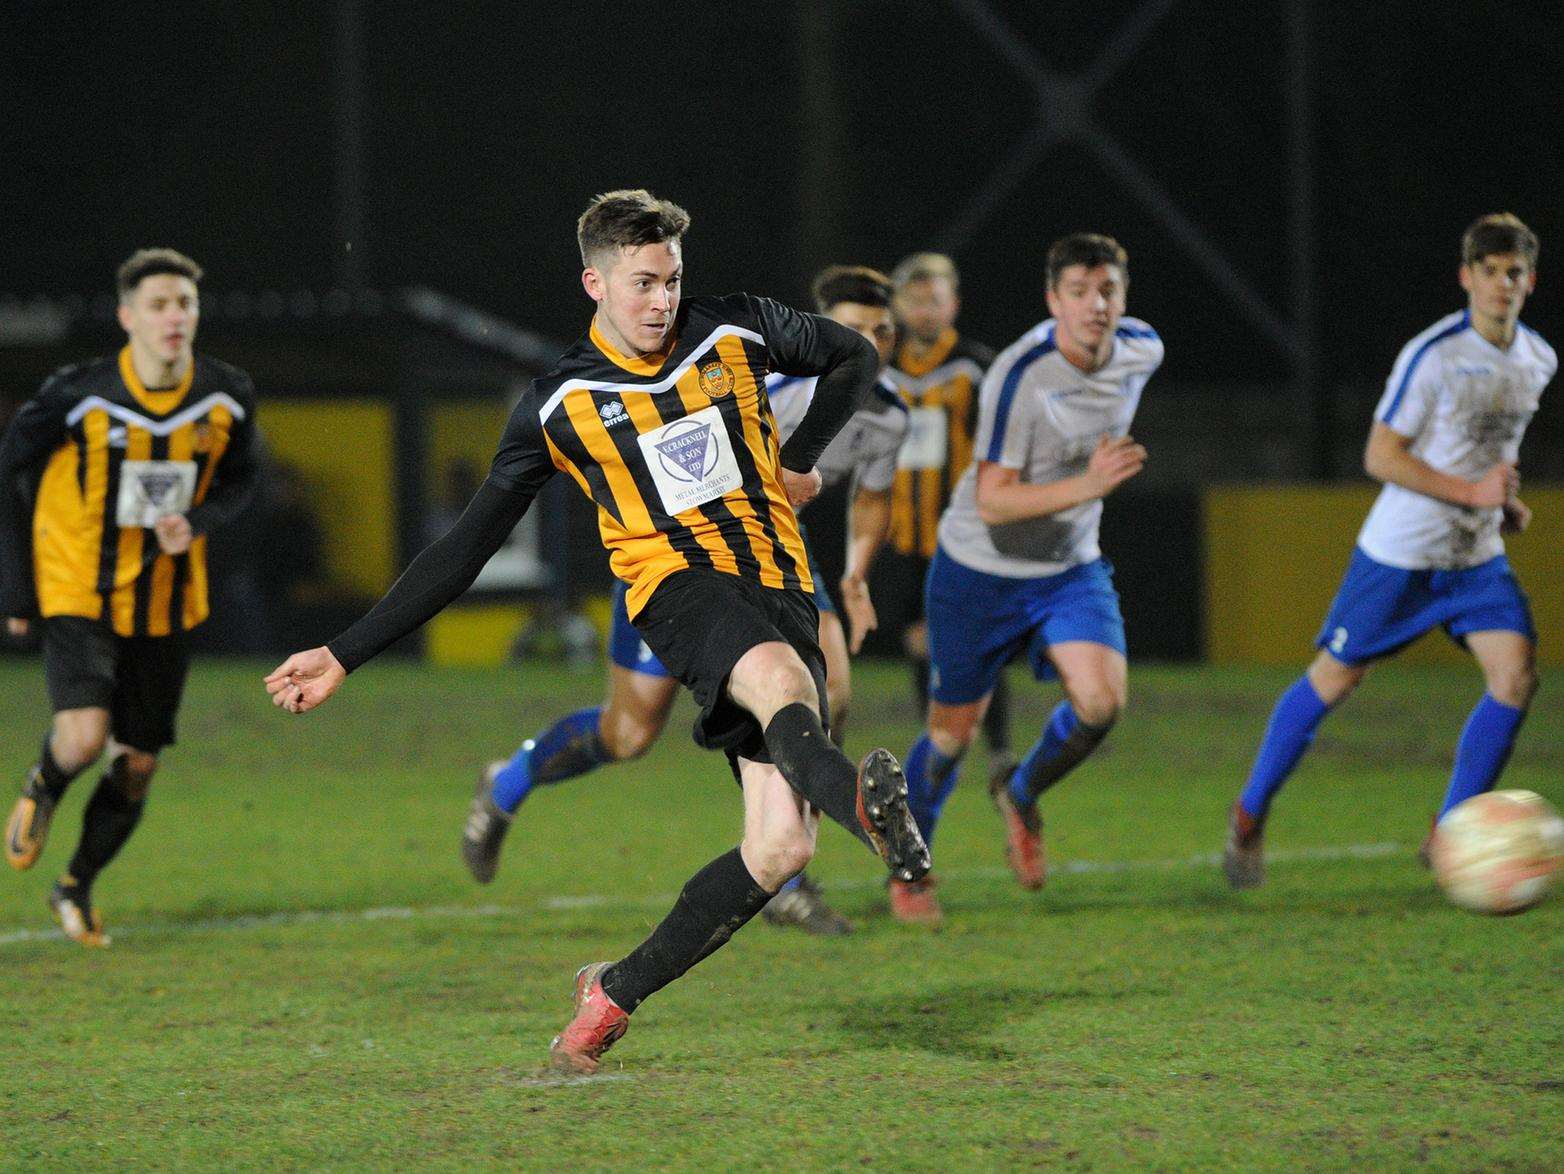 PROLIFIC: Josh Mayhew took his Stow tally for the season to 39 goals. Picture: Mecha Morton